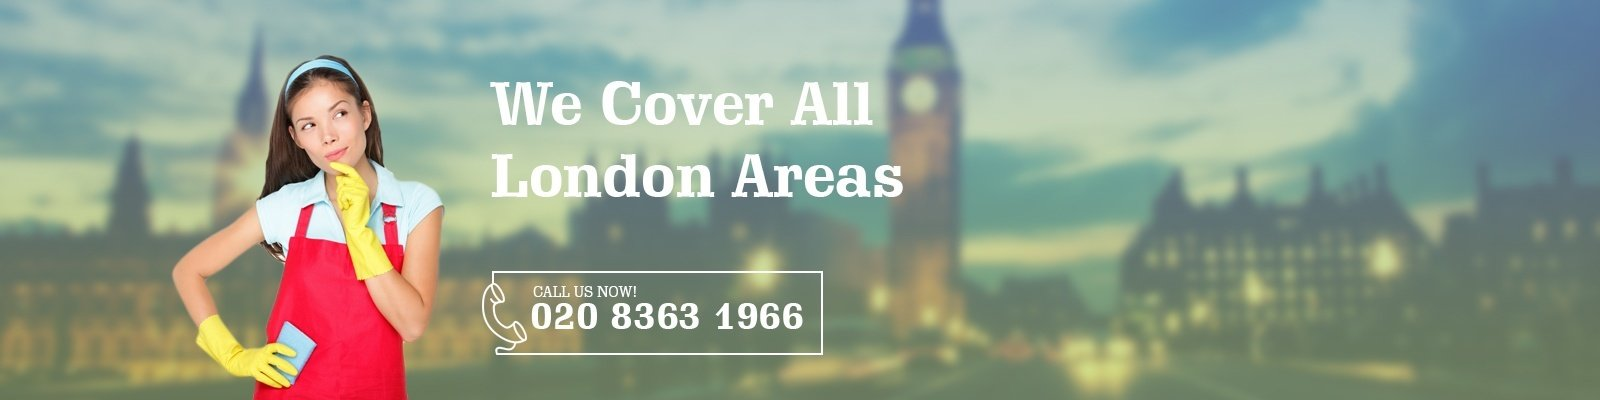 cover-london-areas